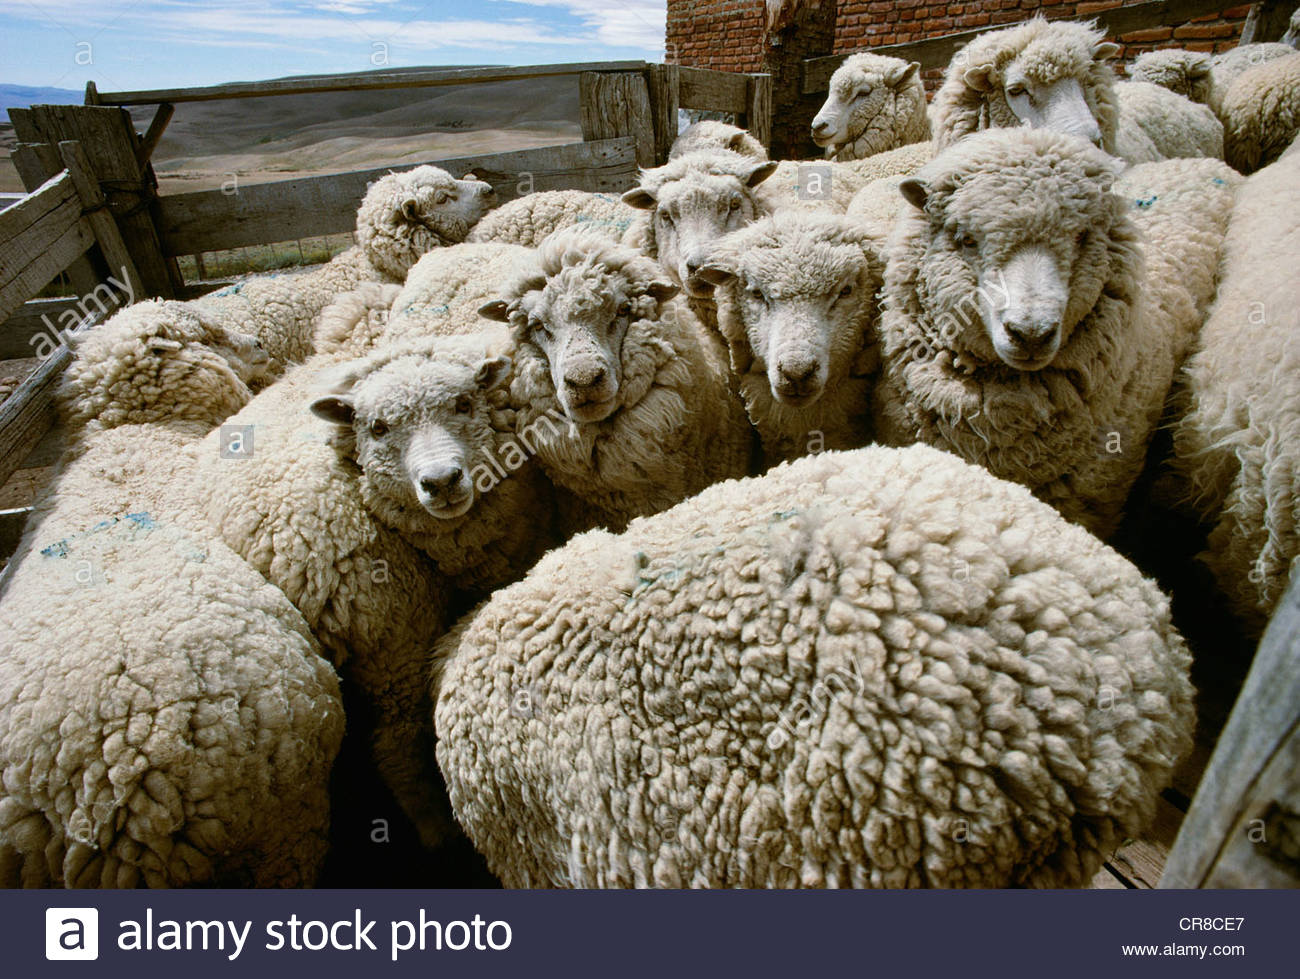 Sheep in holding pens for shearing, Patagonia, Argentina - Stock Image